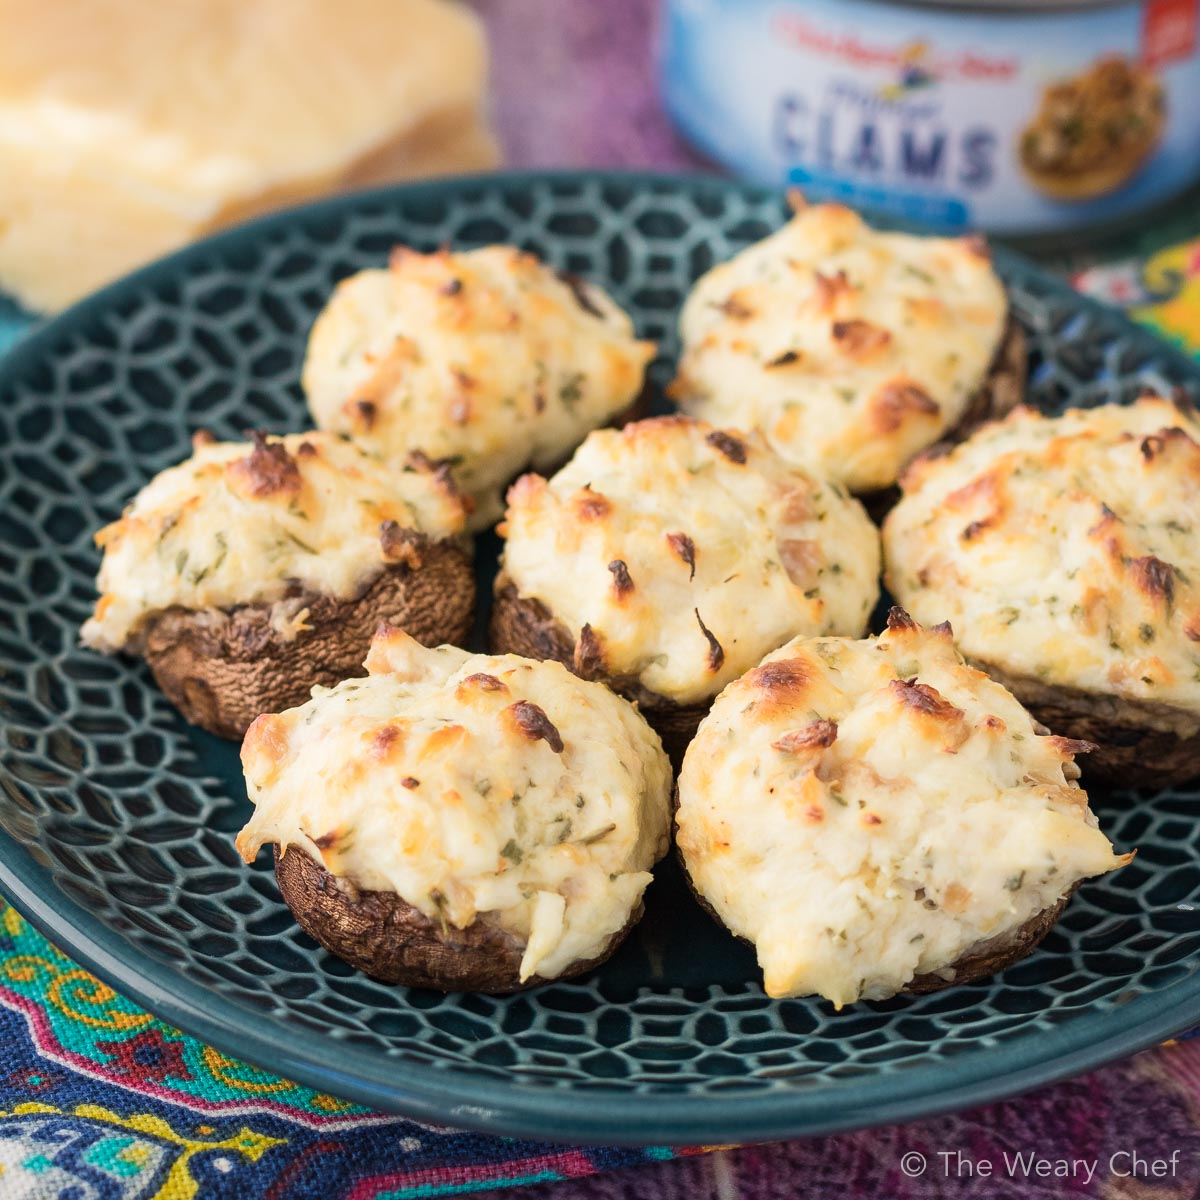 You only need a few simple ingredients to make these scrumptious Seafood Stuffed Mushrooms! They will be the start of any party!